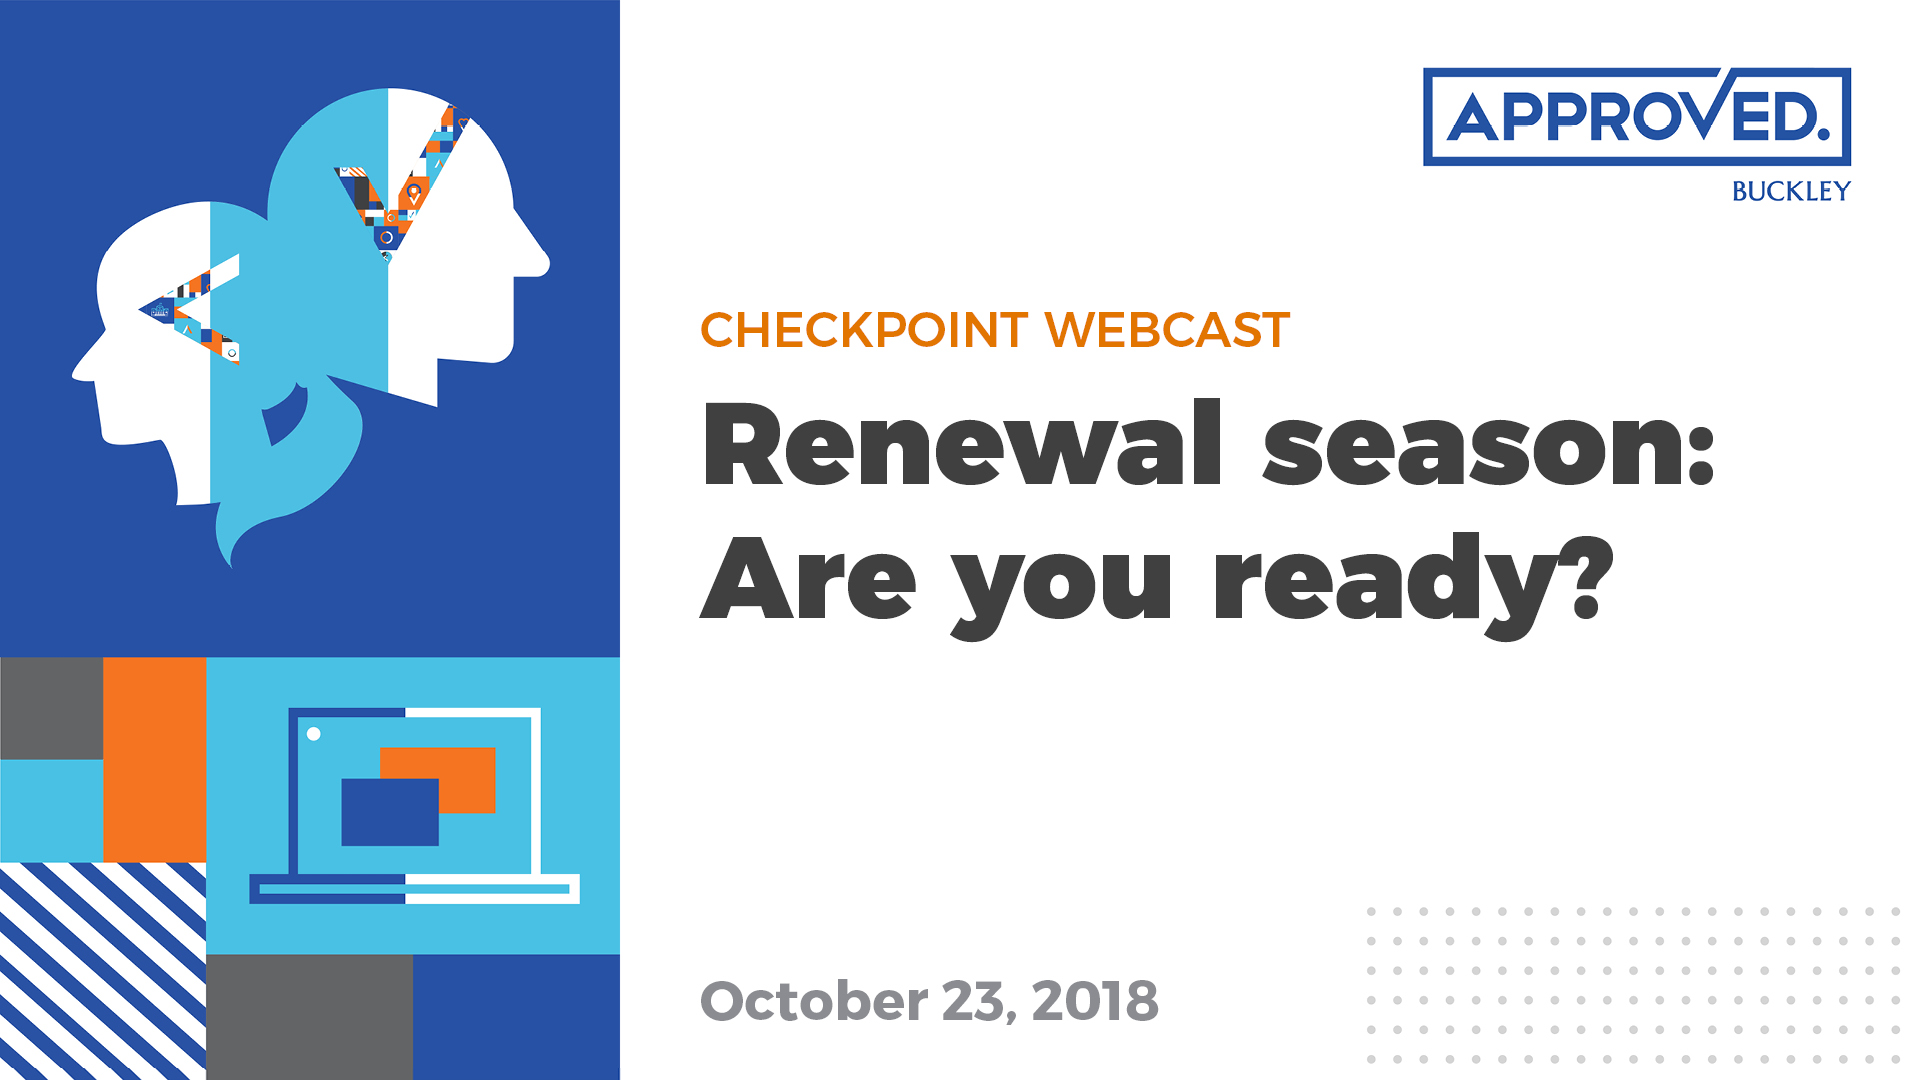 Renewal season: Are you ready? | APPROVED Checkpoint Webcast